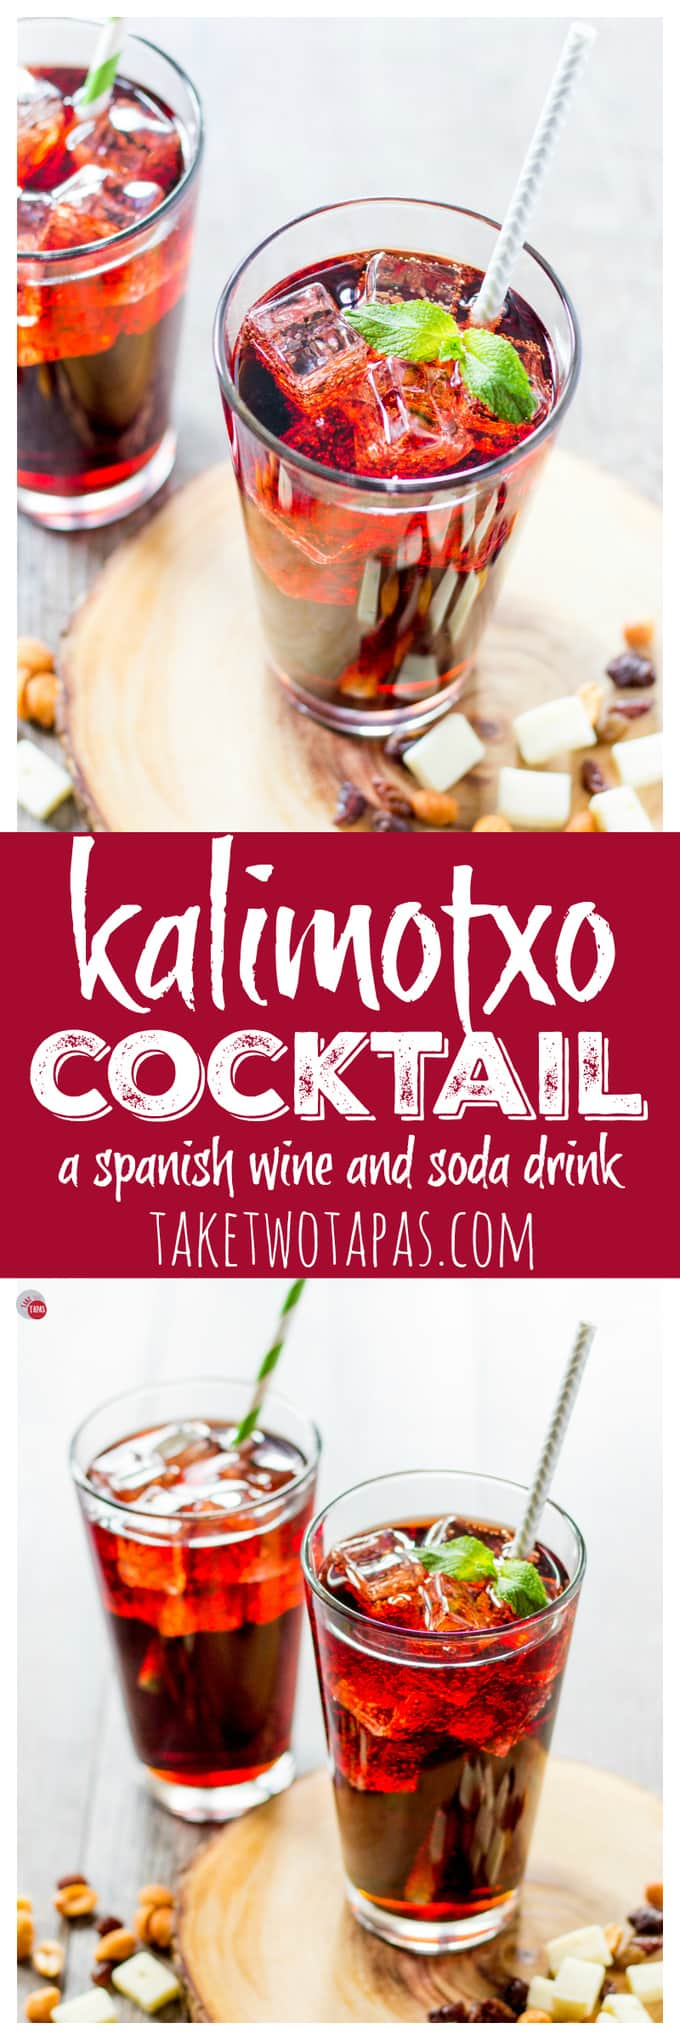 Kalimotxo Cocktail with wine and soda | Take Two Tapas